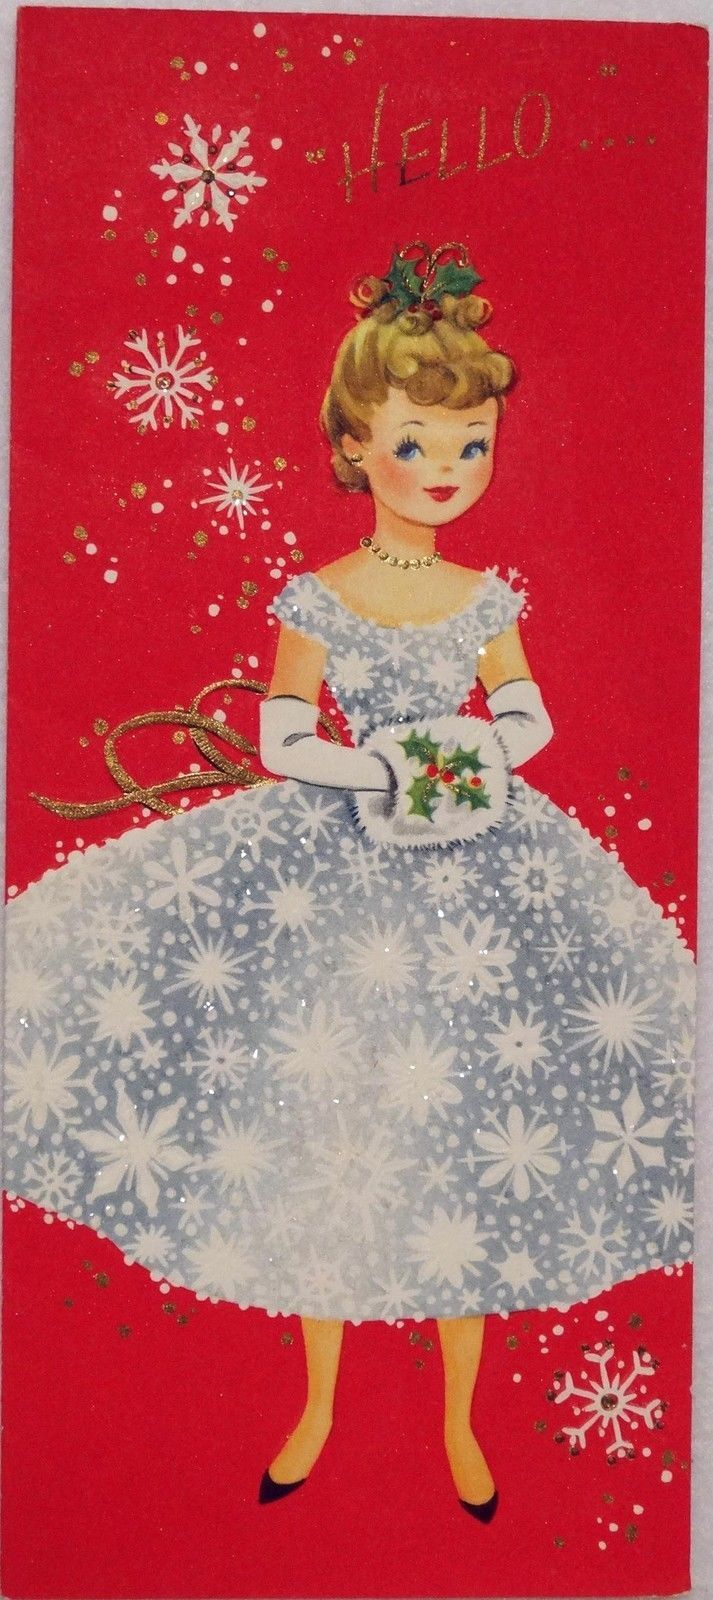 1096 50s beautiful glittered girl w muff vintage christmas beautiful glittered girl w muff vintage christmas greeting card kristyandbryce Image collections